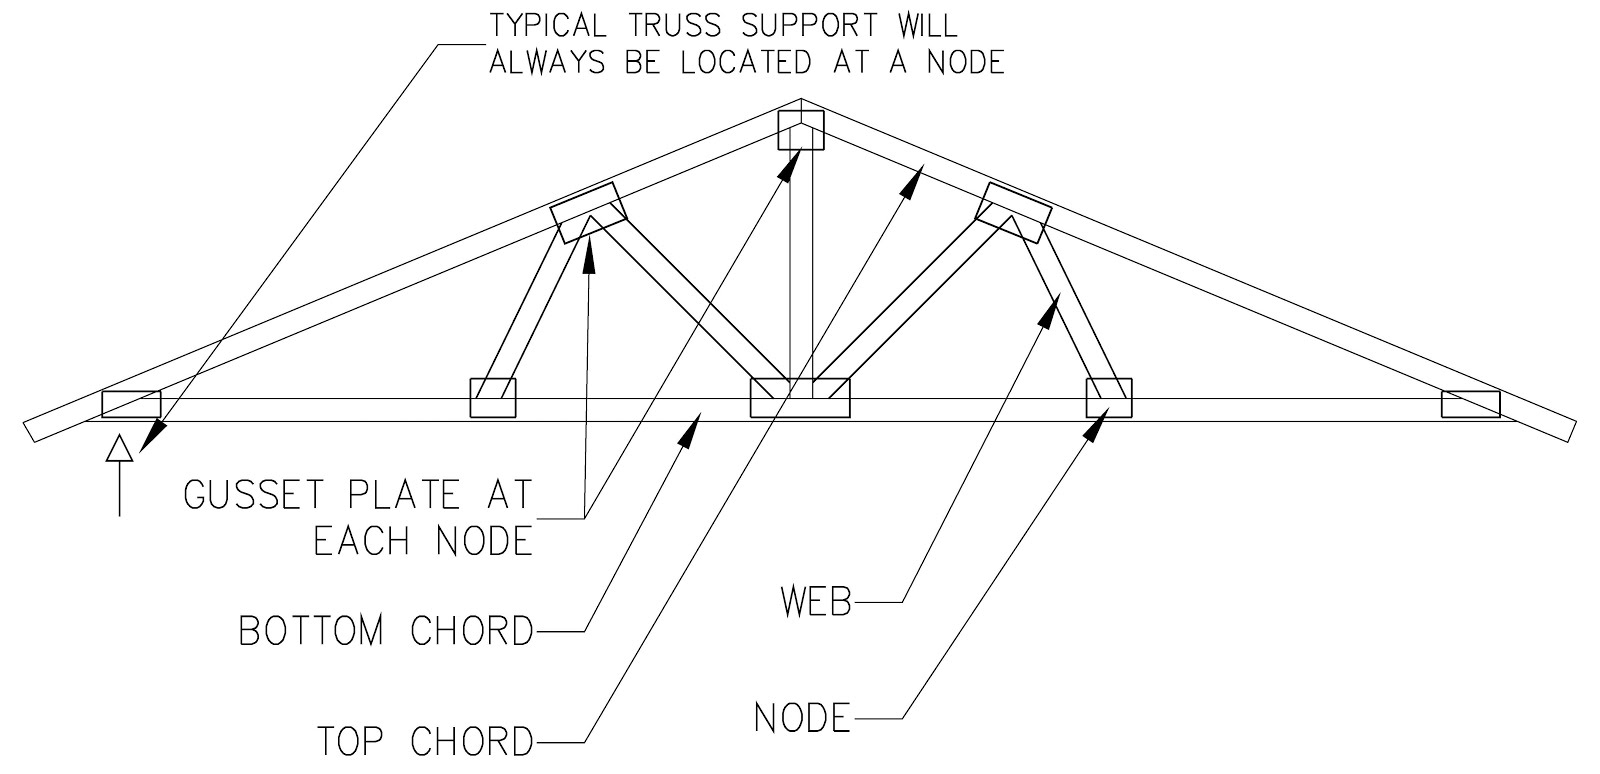 Arc272 Structural Design Ii Type Of Structural And Loads